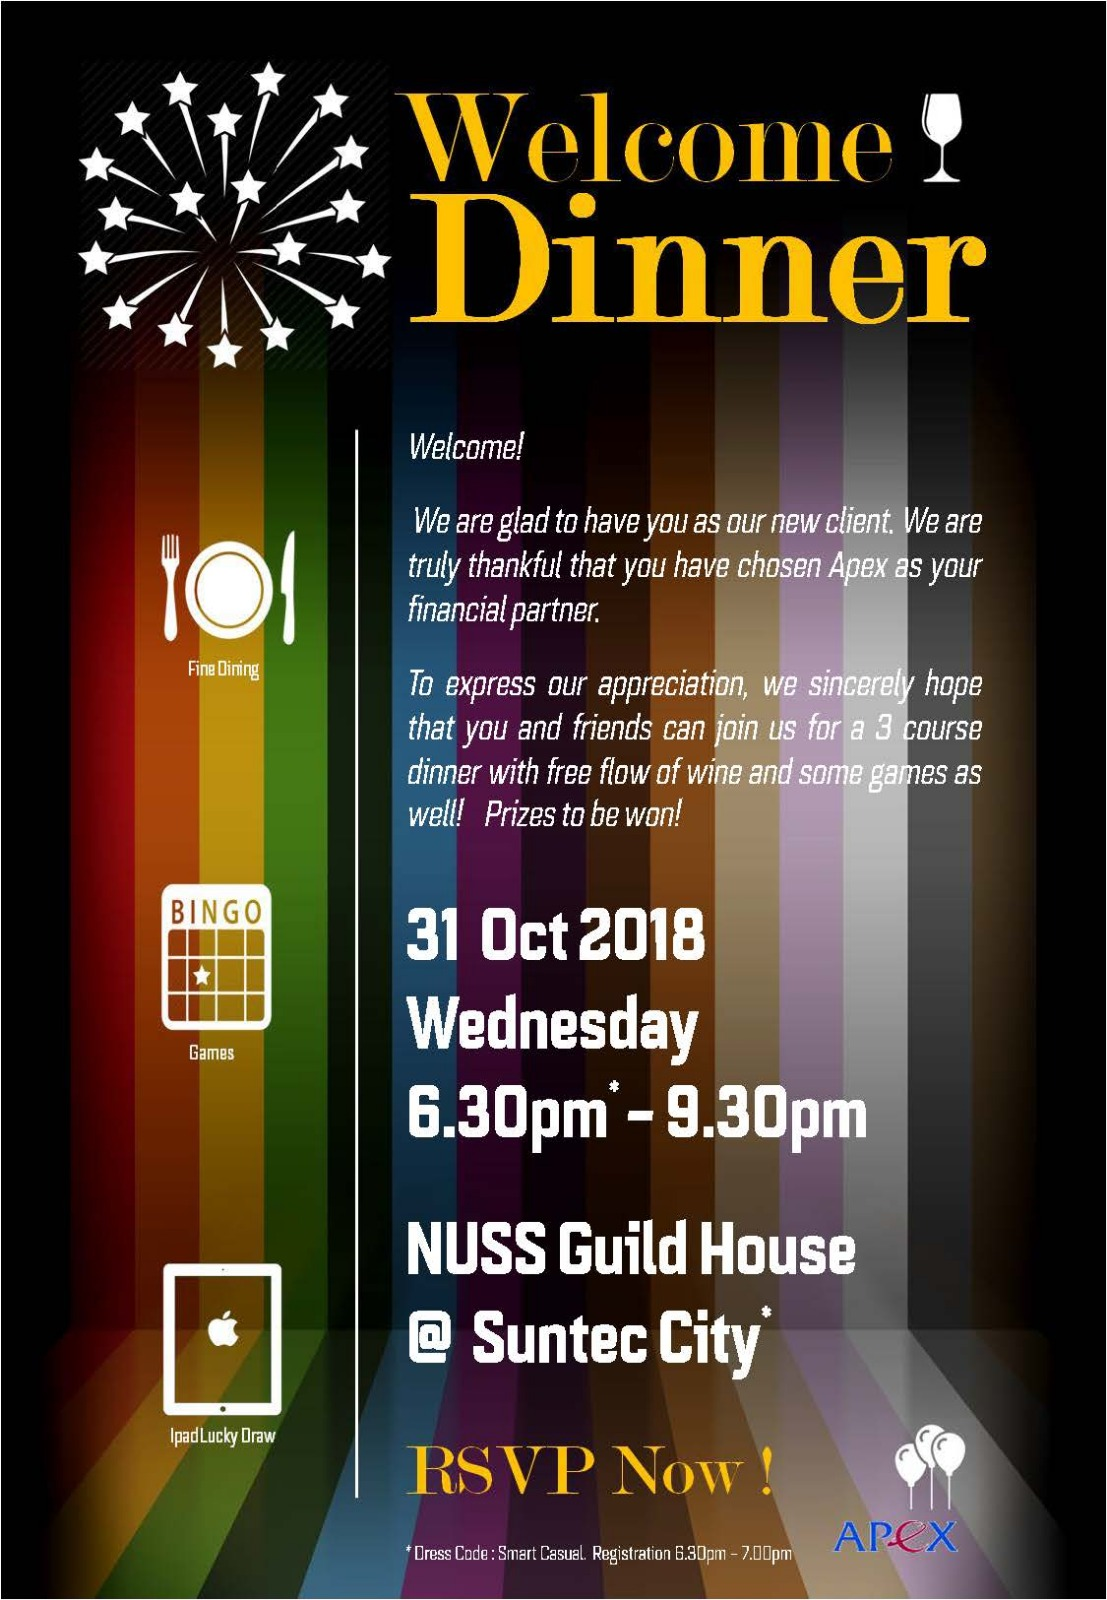 Welcome Dinner 2018 Oct 31 Apex Wealth Management